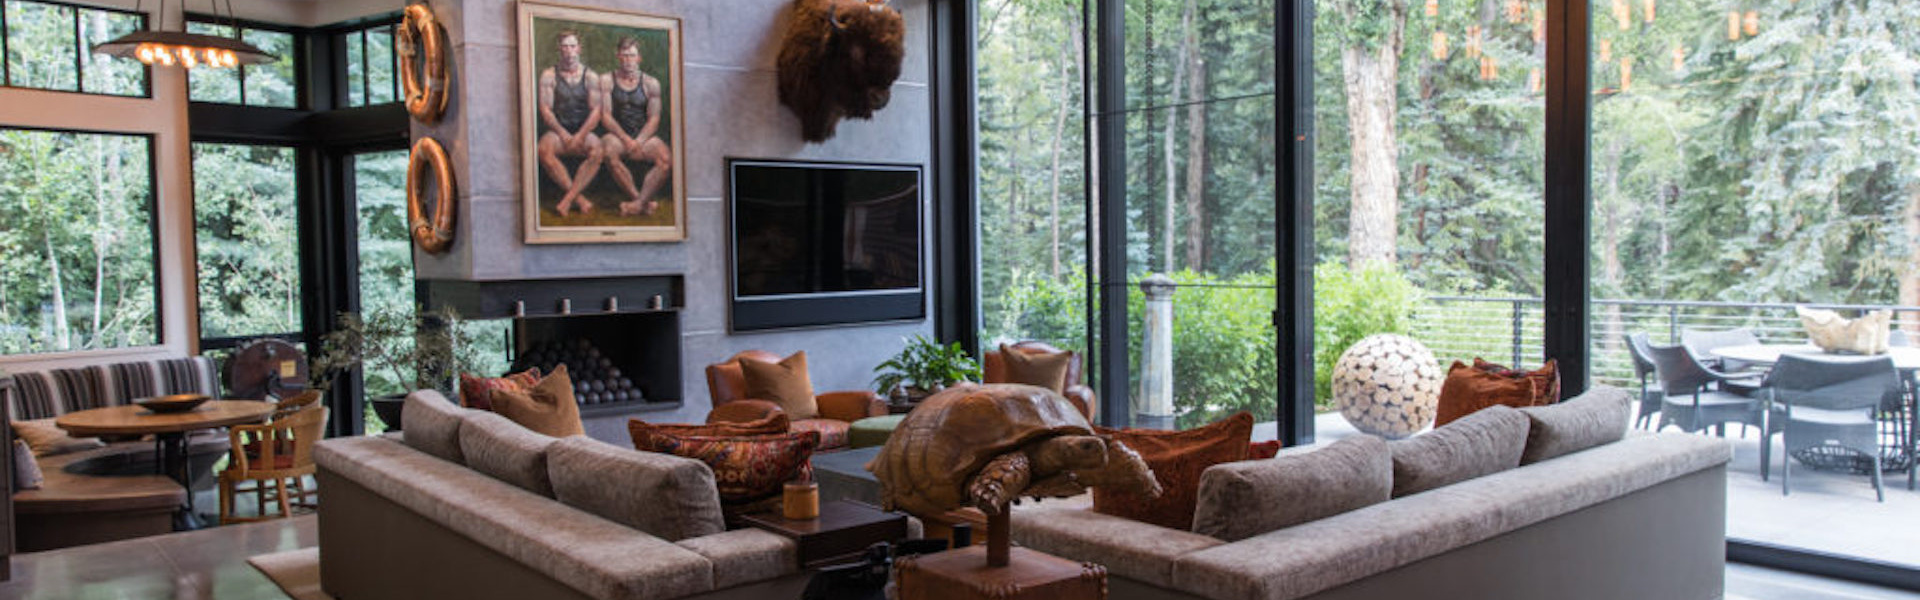 Smart home installation by Paragon Systems Integration for Snowmass